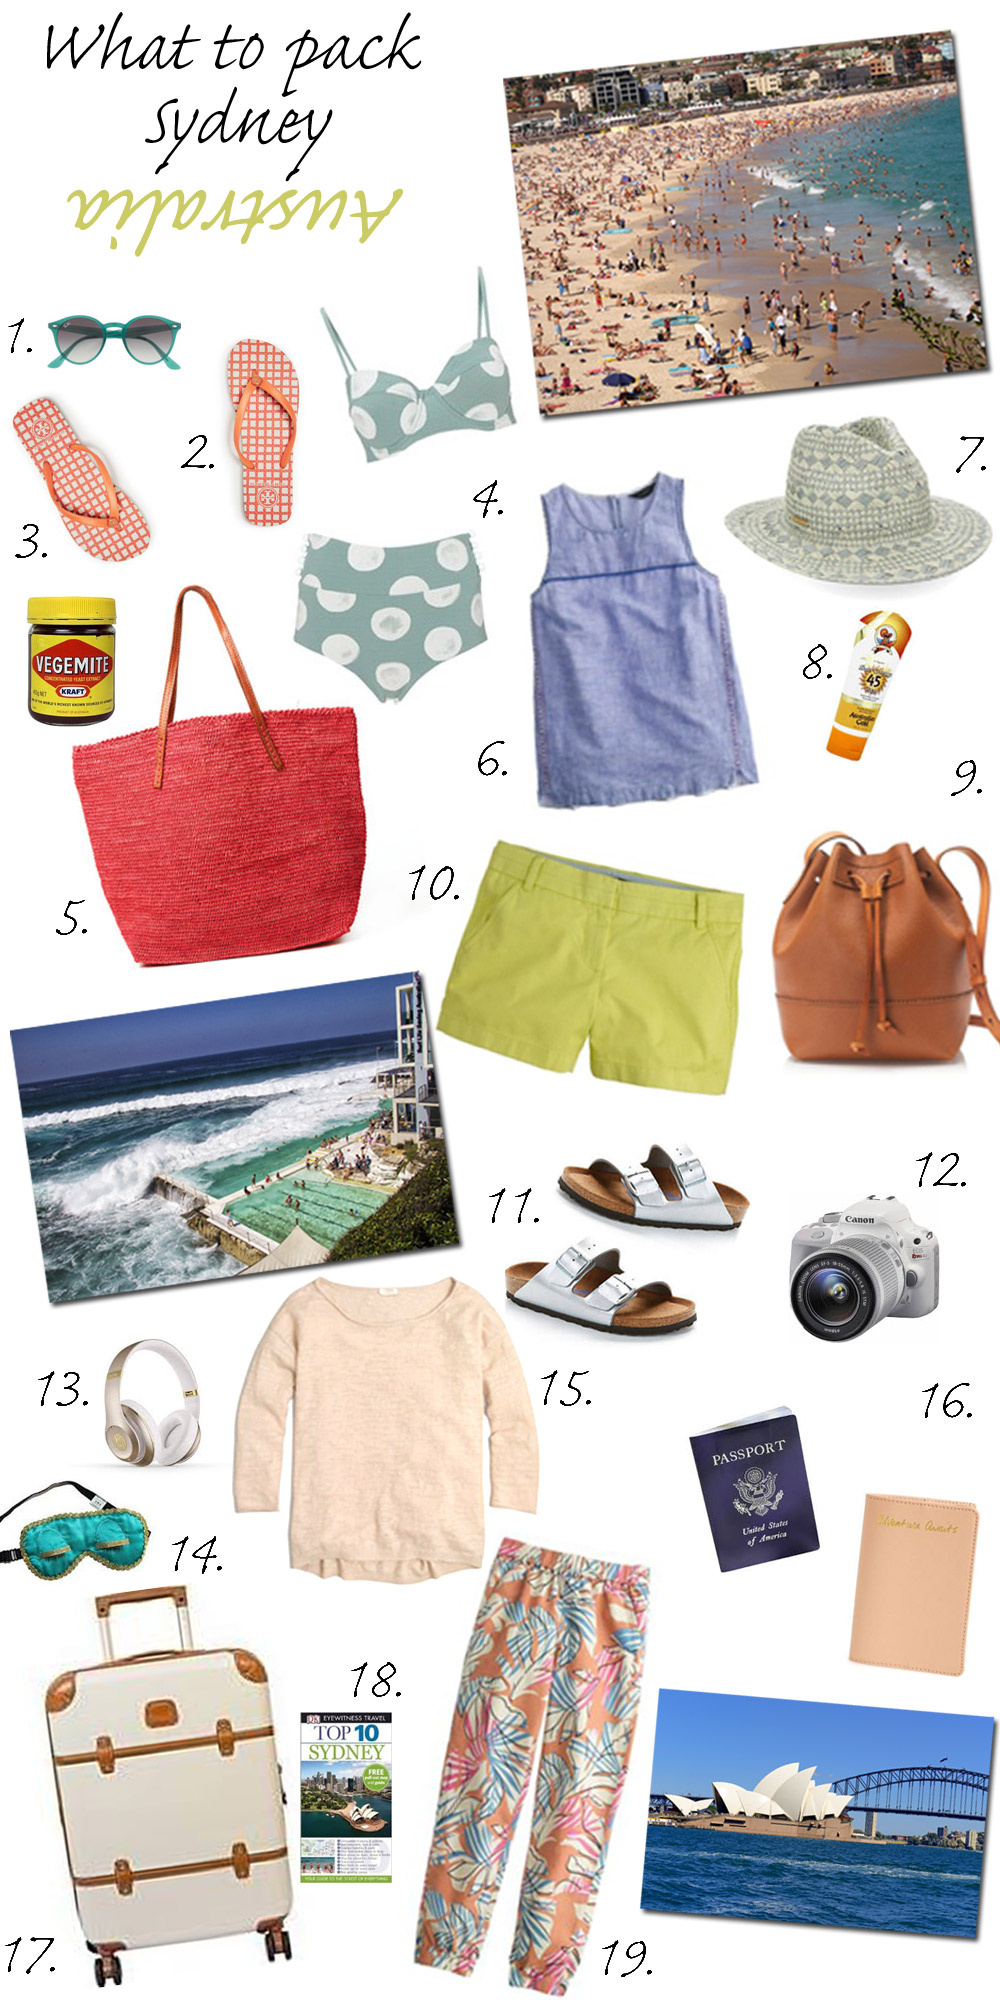 What to Pack for Sydney